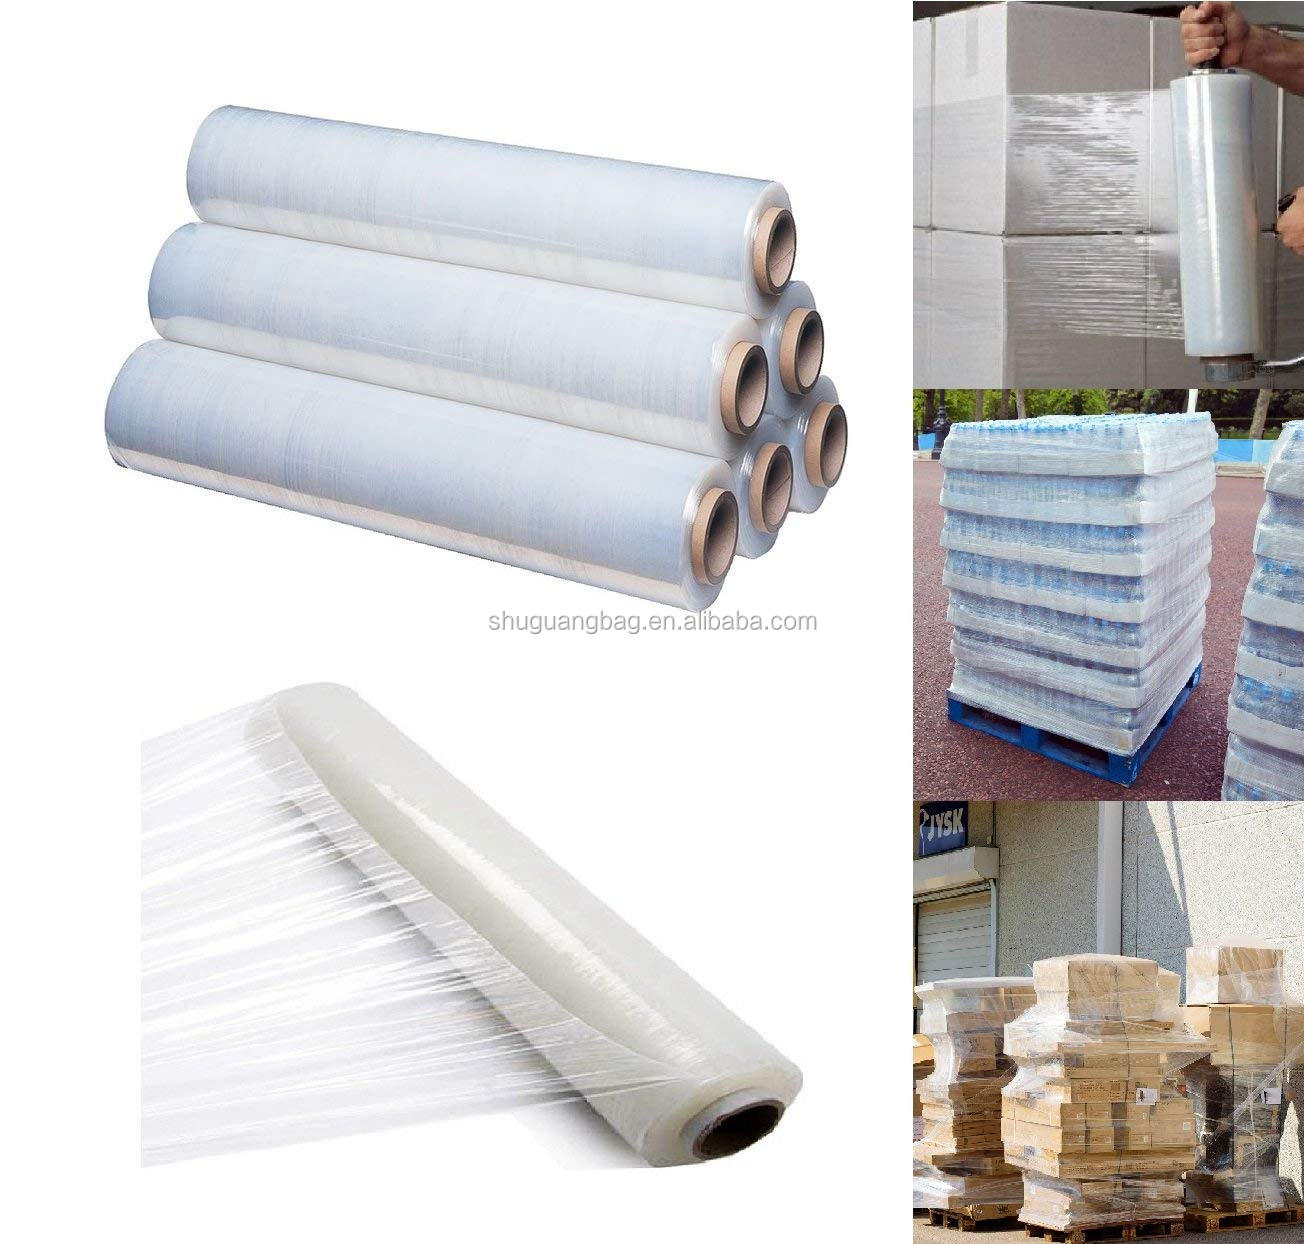 Pallet Stretch Wrap Film  (Thickness 20/23mic) 300 meters